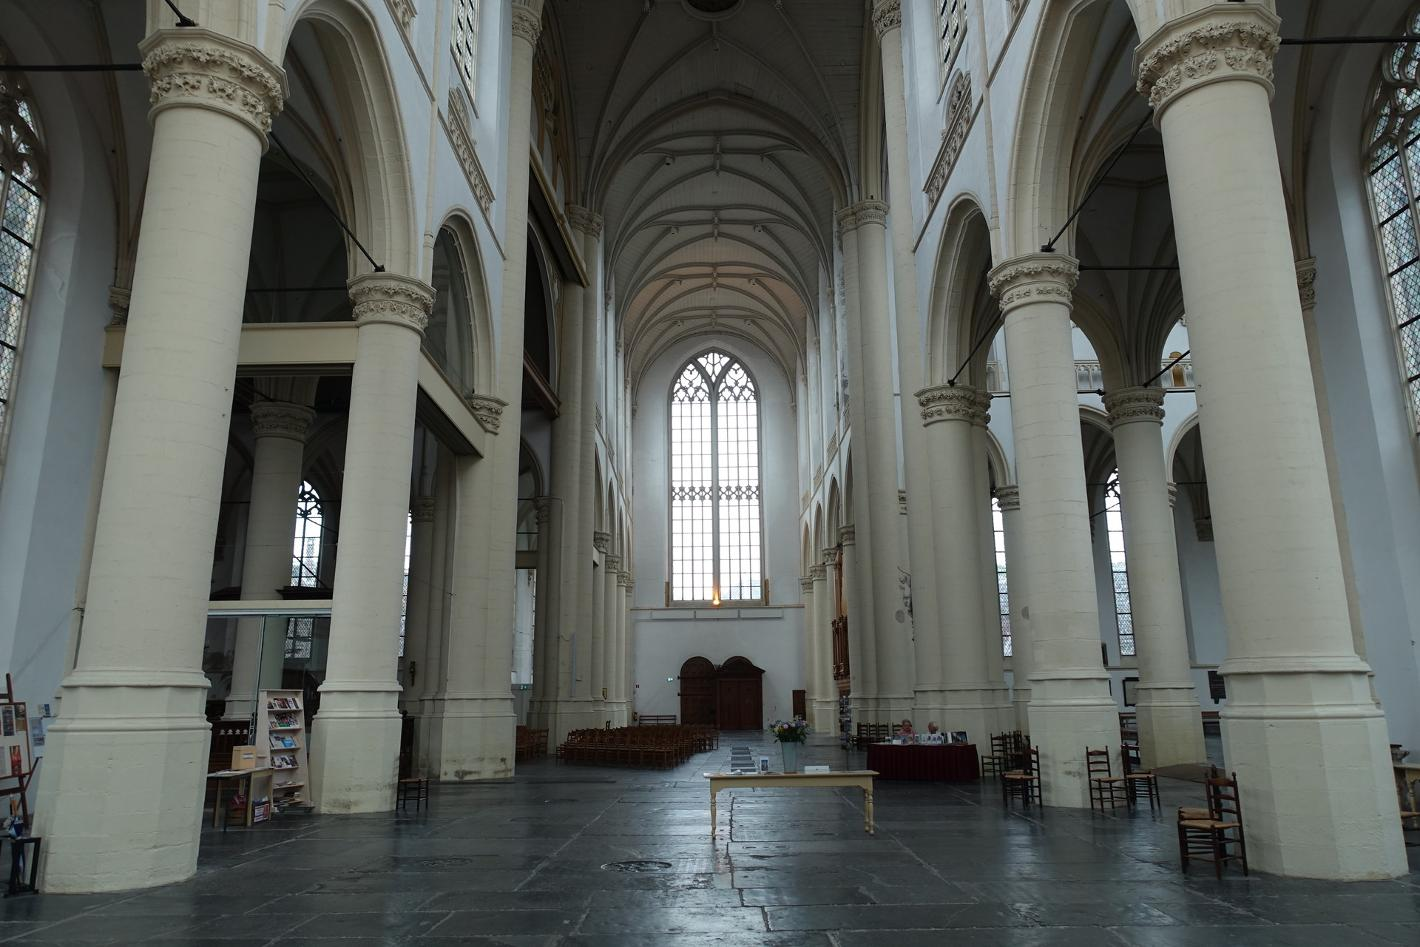 Photo Hooglandse kerk in Leiden, View, Sights & landmarks - #2